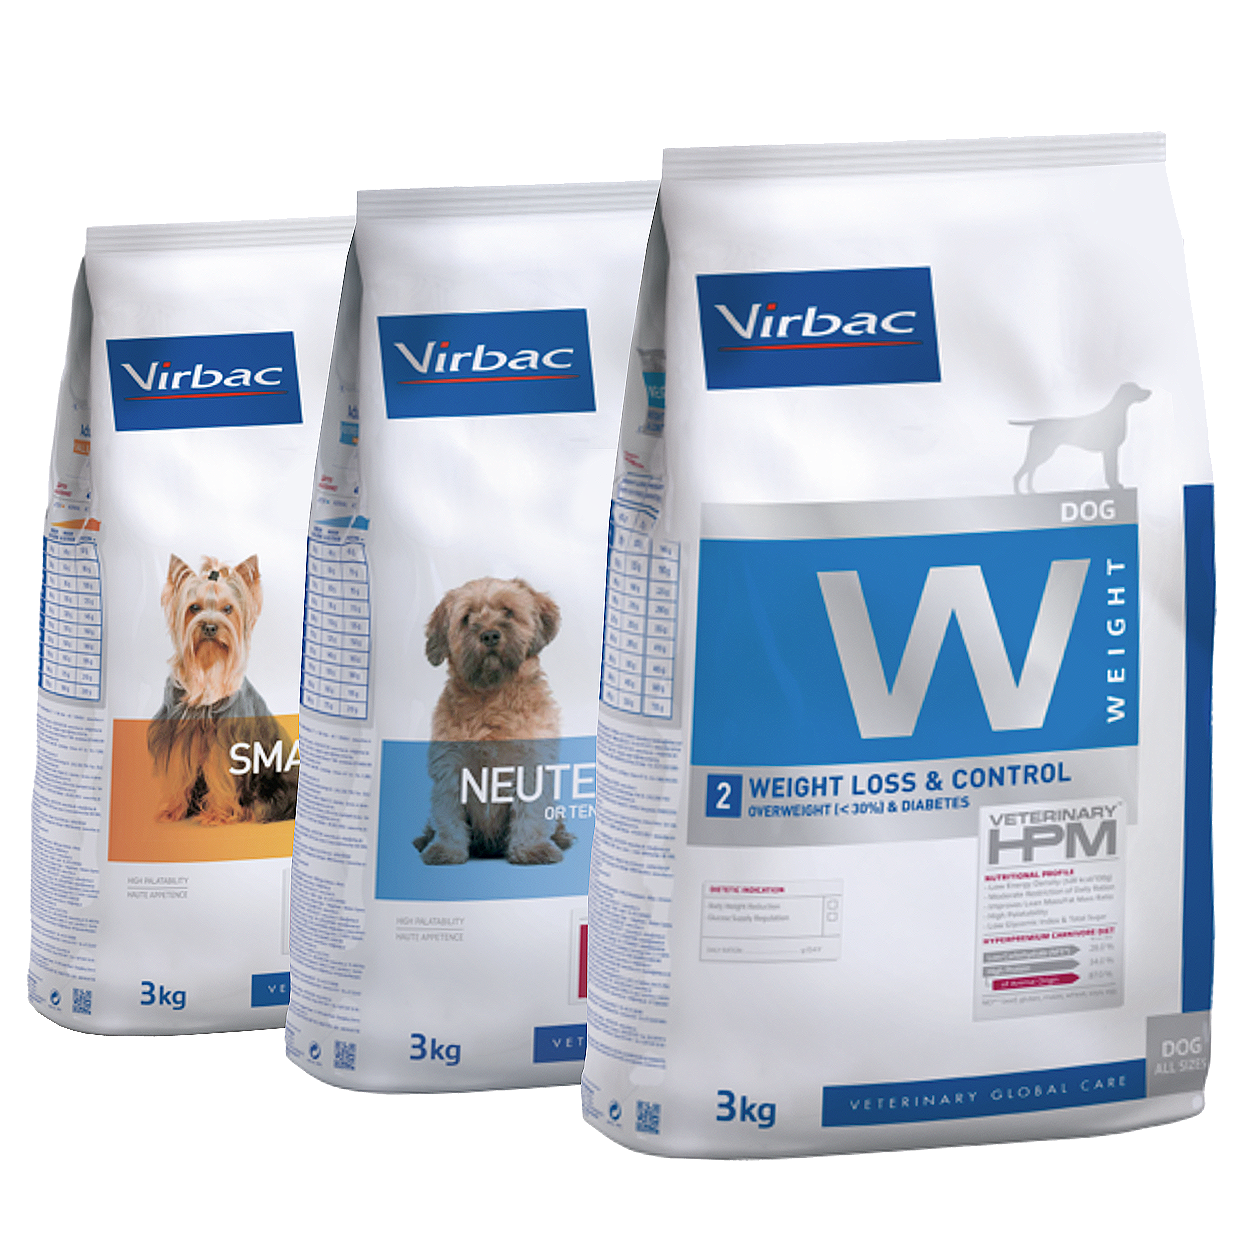 Virbac pet food, available to purchase at Pattenden Vets in Marden.